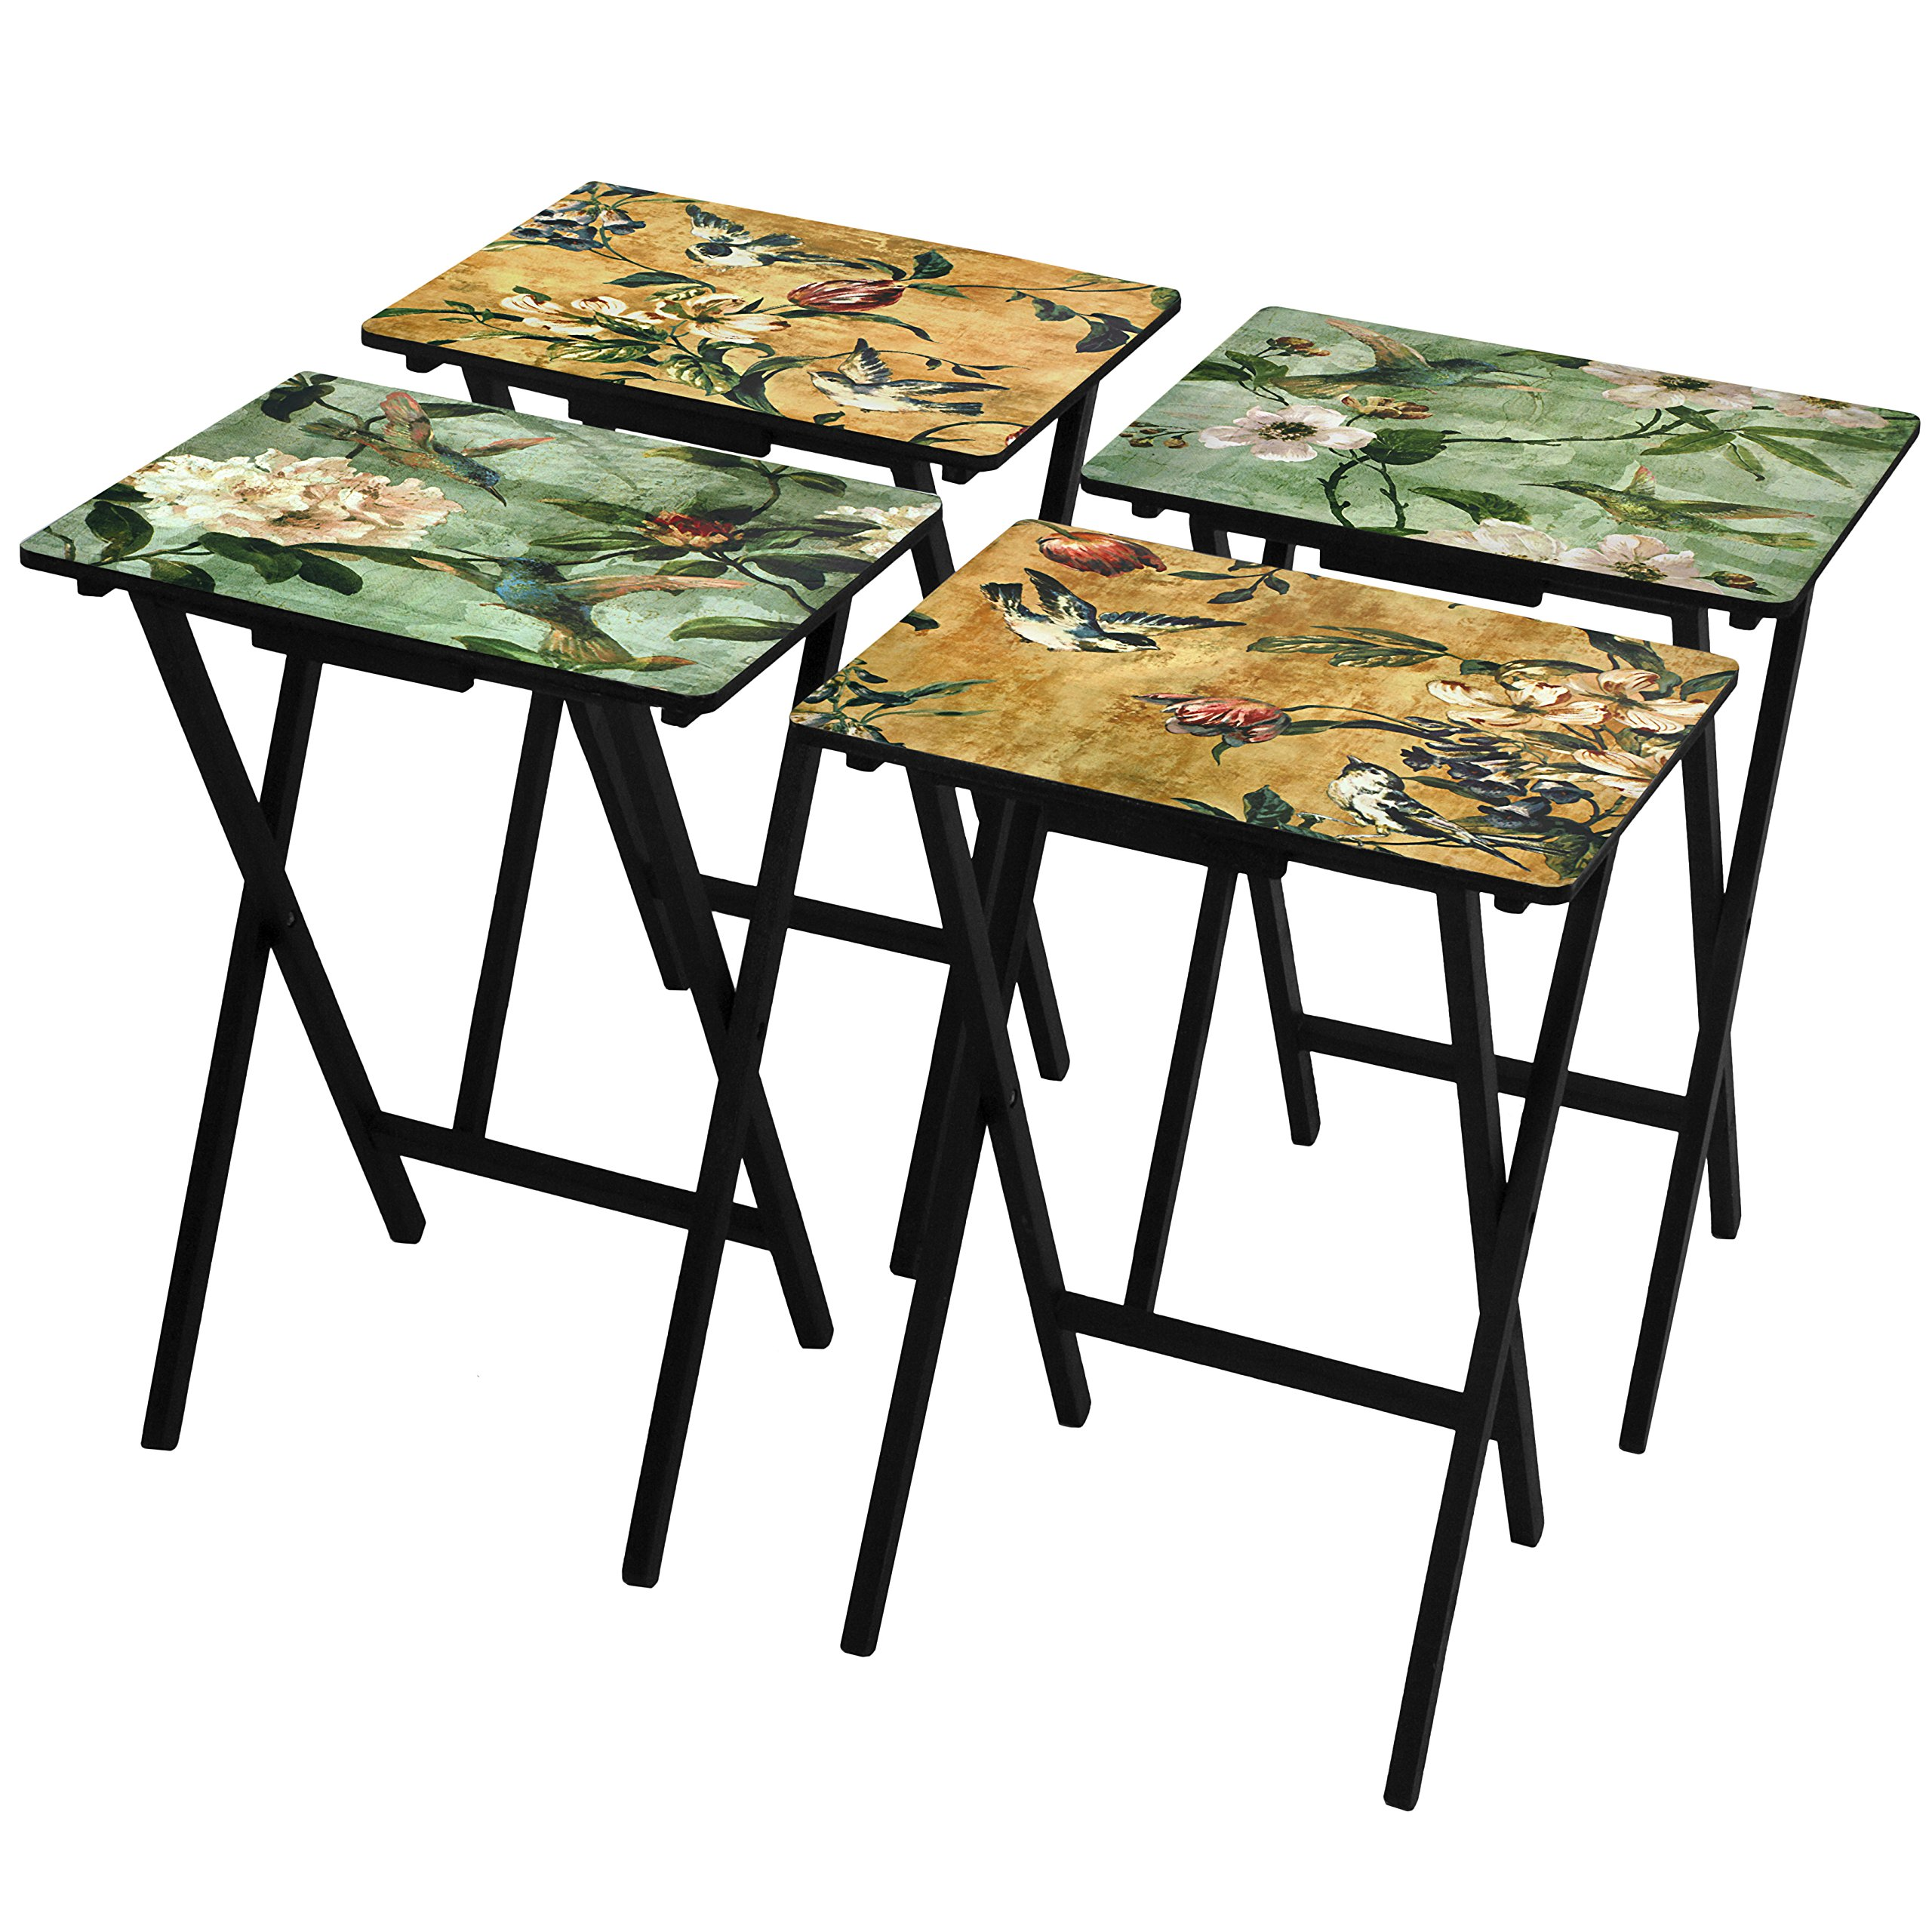 ORIENTAL FURNITURE Birds and Flowers TV Tray Set with Stand by ORIENTAL FURNITURE